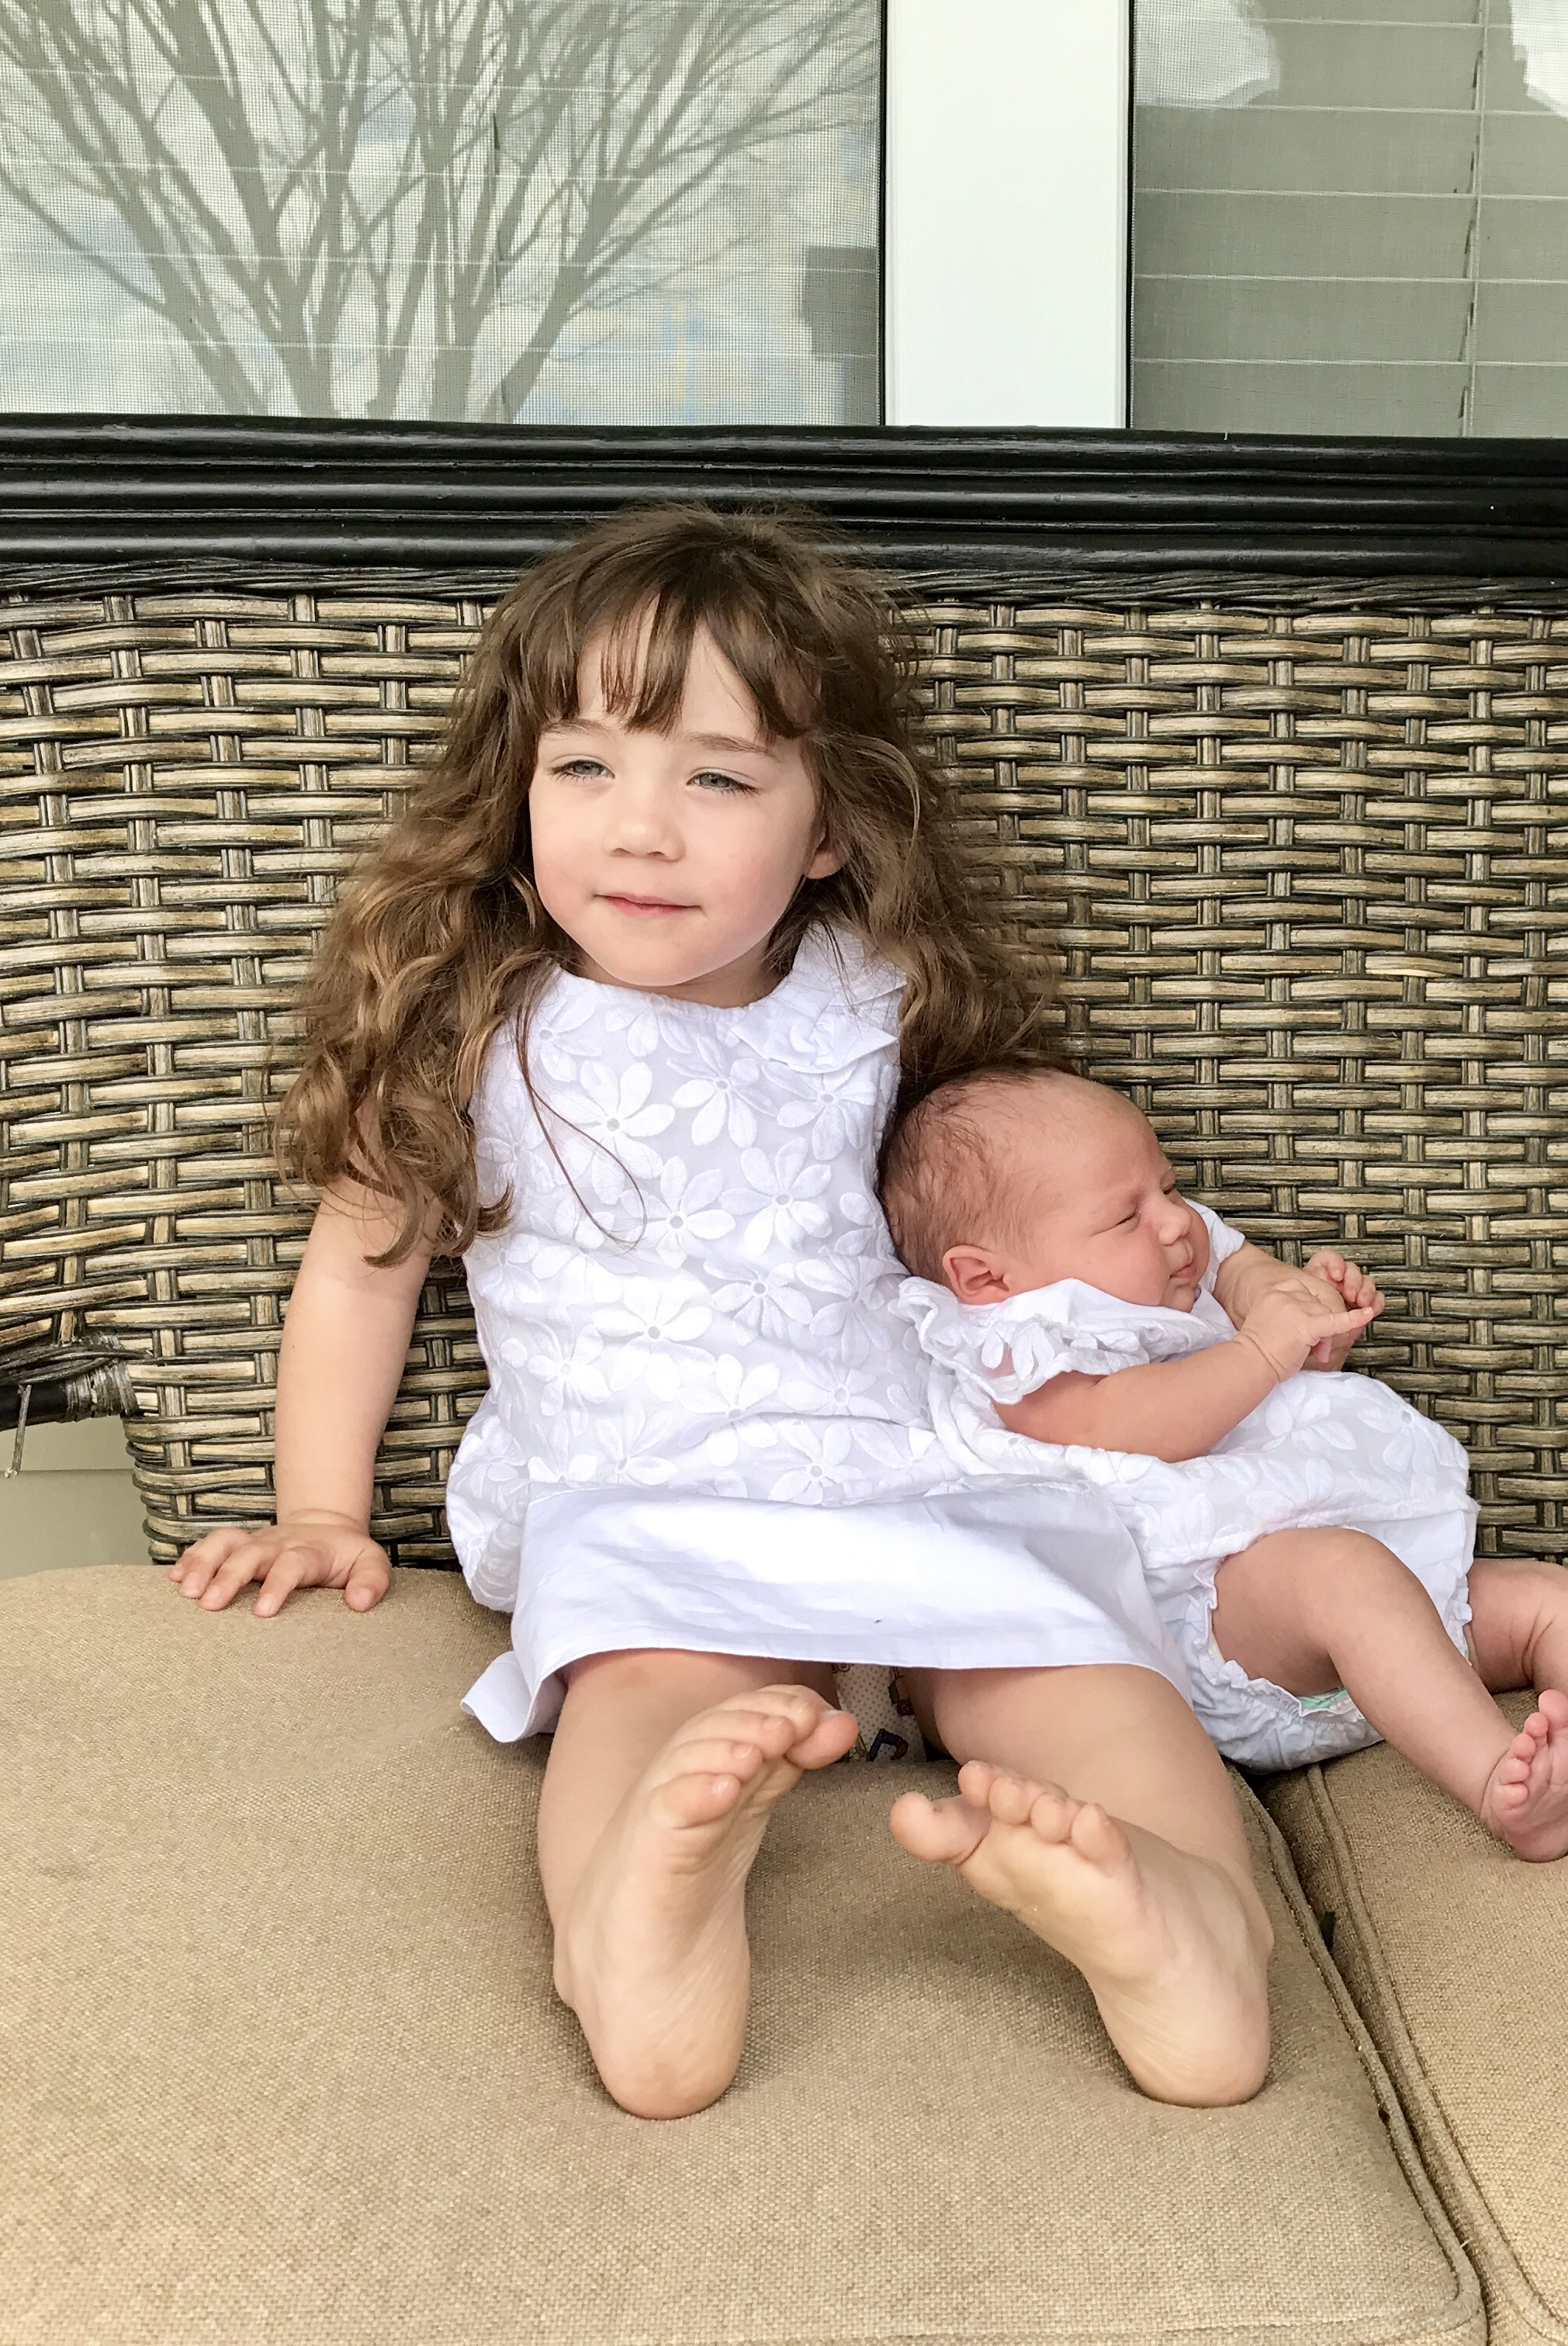 Tennessee with her new baby sister Ember. She is a great big sister.